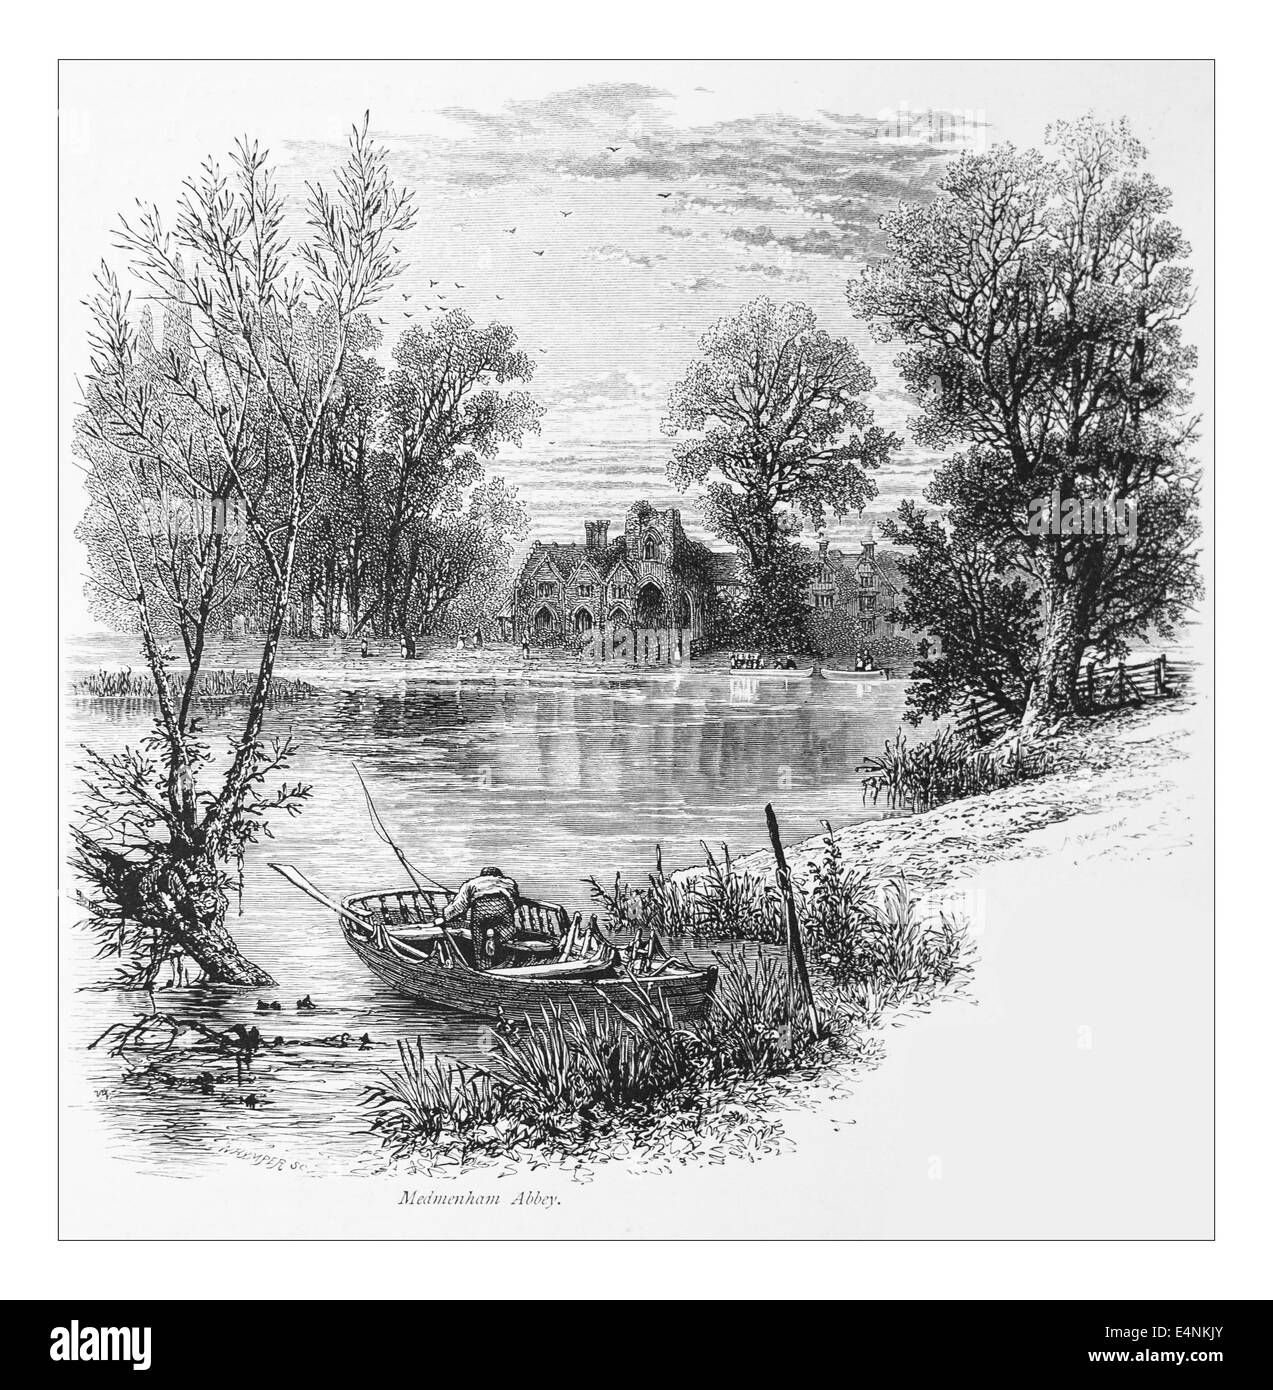 Medmenham Abbey Illustration from 'The British isles - Cassell Petter & Galpin Part 19 Picturesque Europe. 1877' Stock Photo